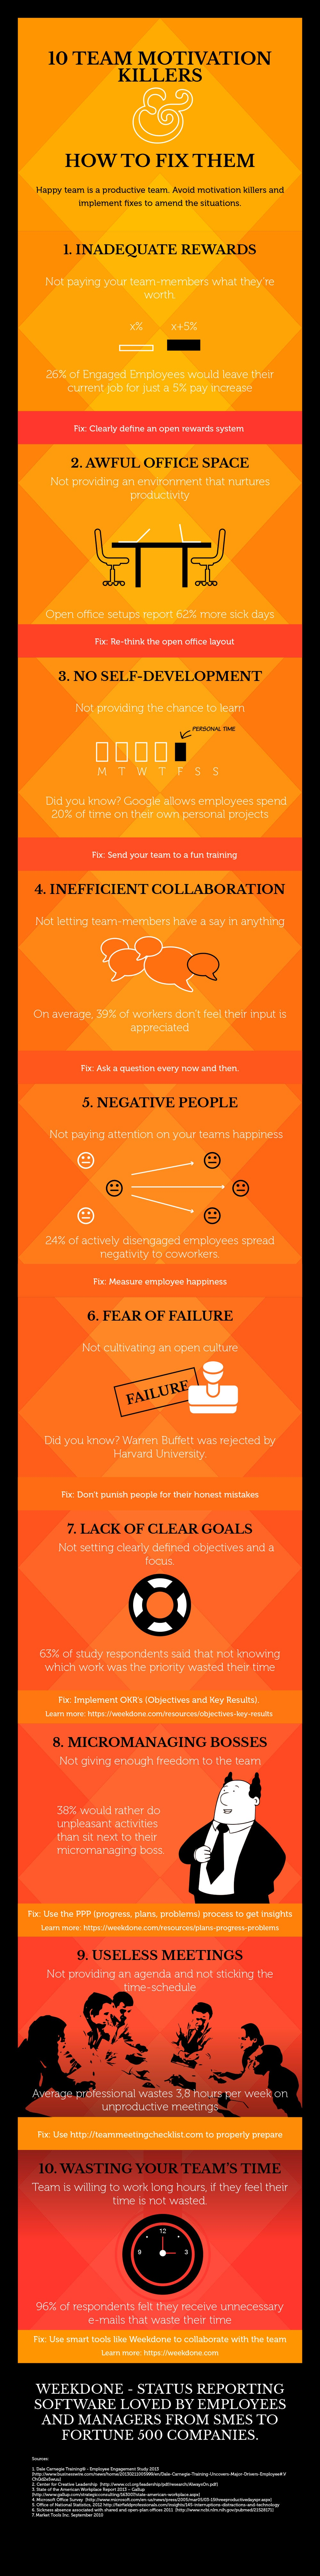 The 10 Biggest Motivation Killers and How to Fix Them (Infographic)